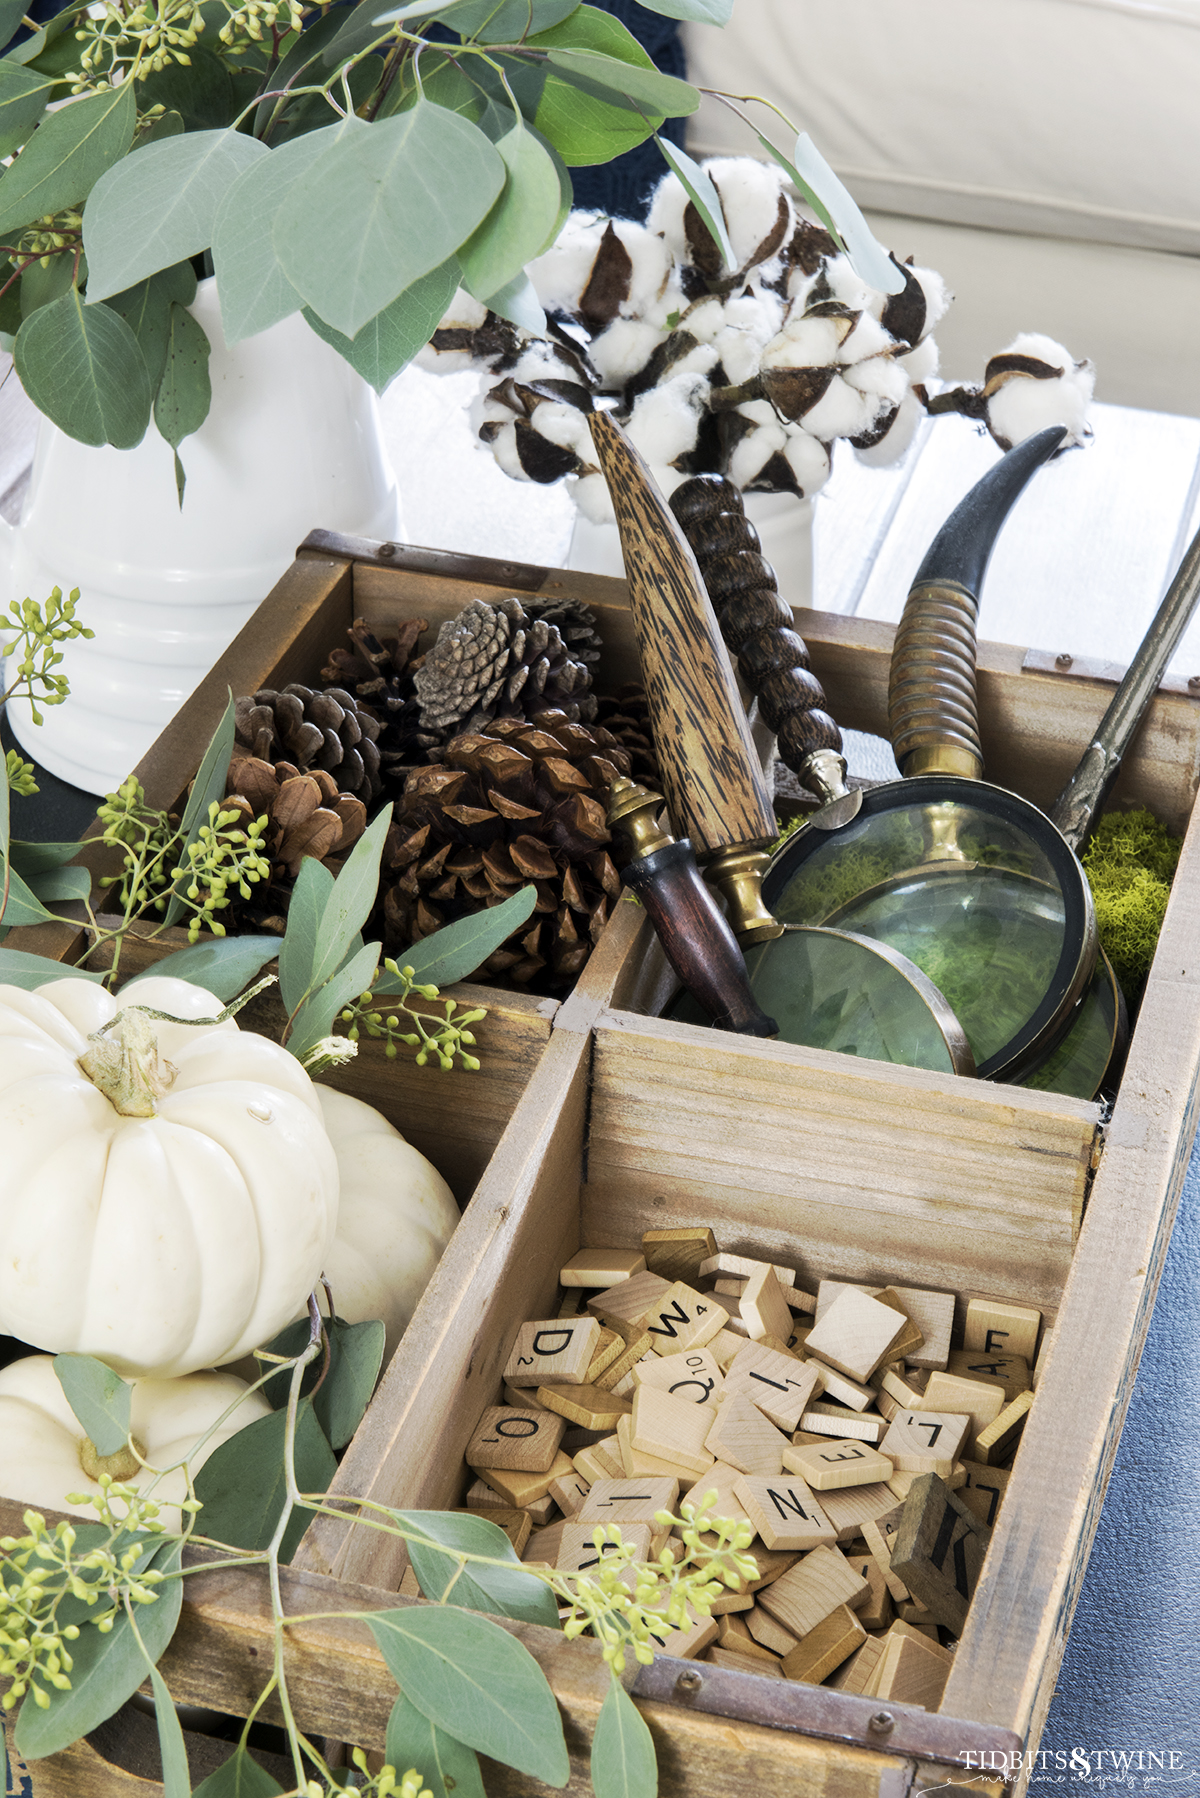 Wooden crate holding white pumpkins scrabble tiles and magnifying glasses